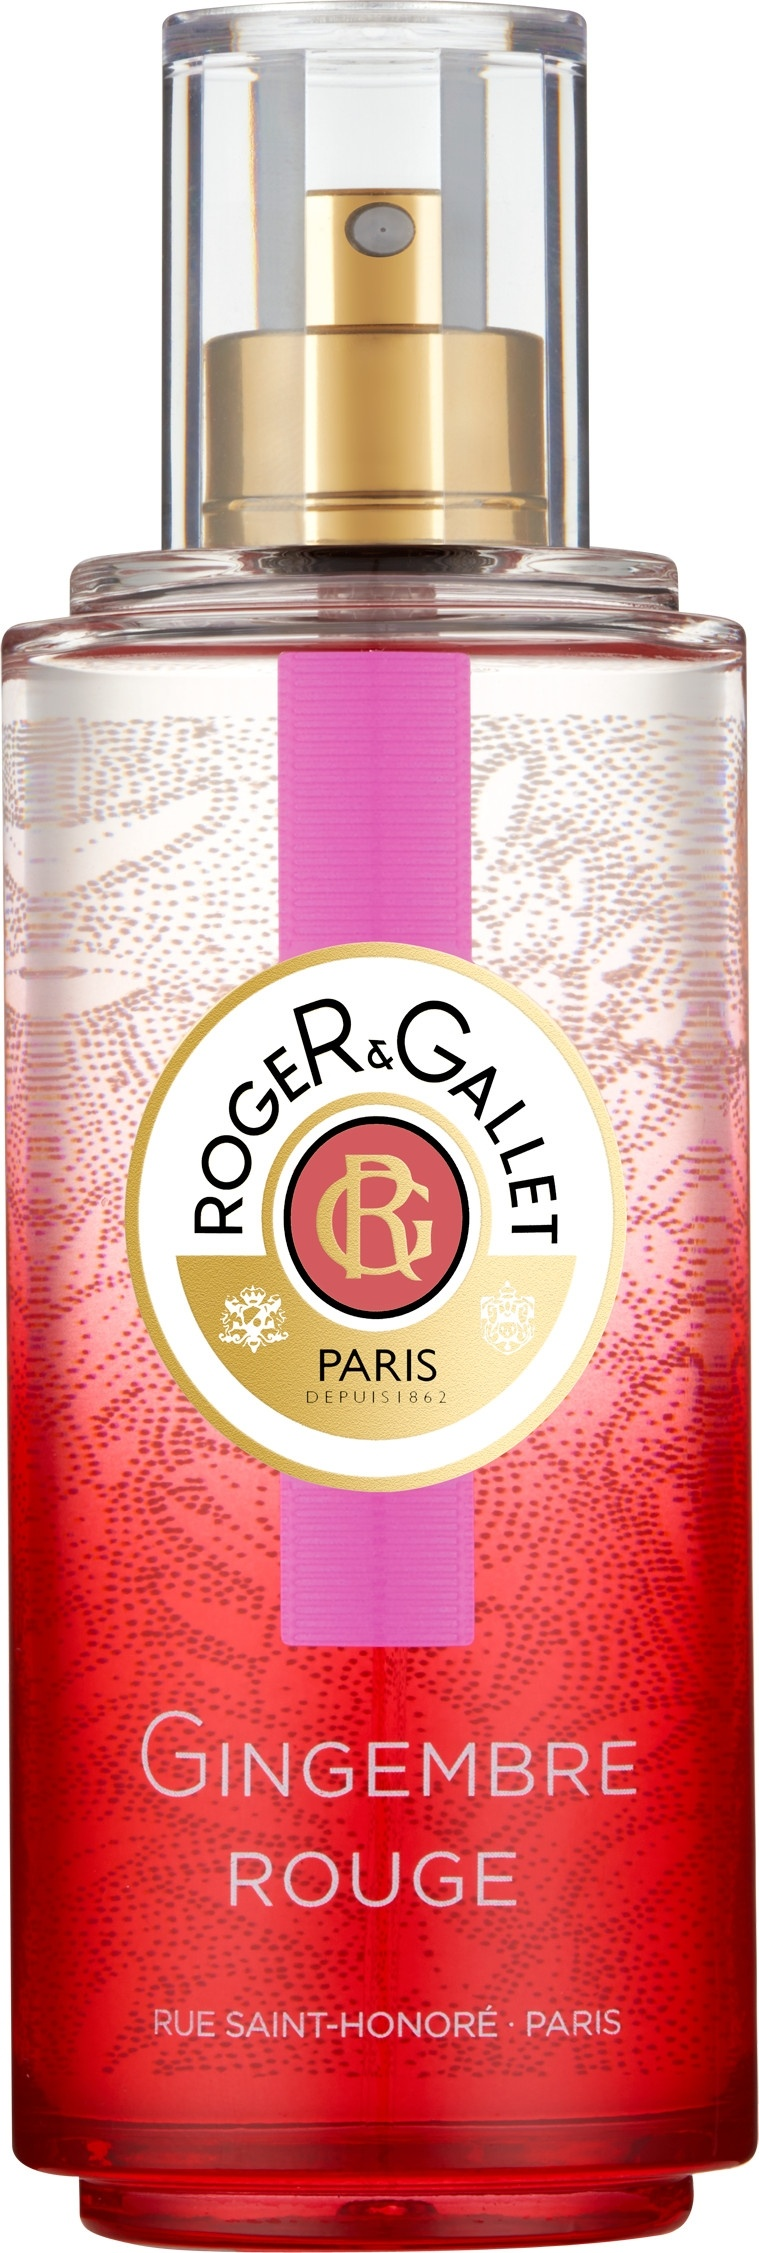 Roger & Gallet Gingembre Rouge Fragrant Water Spray 100ml